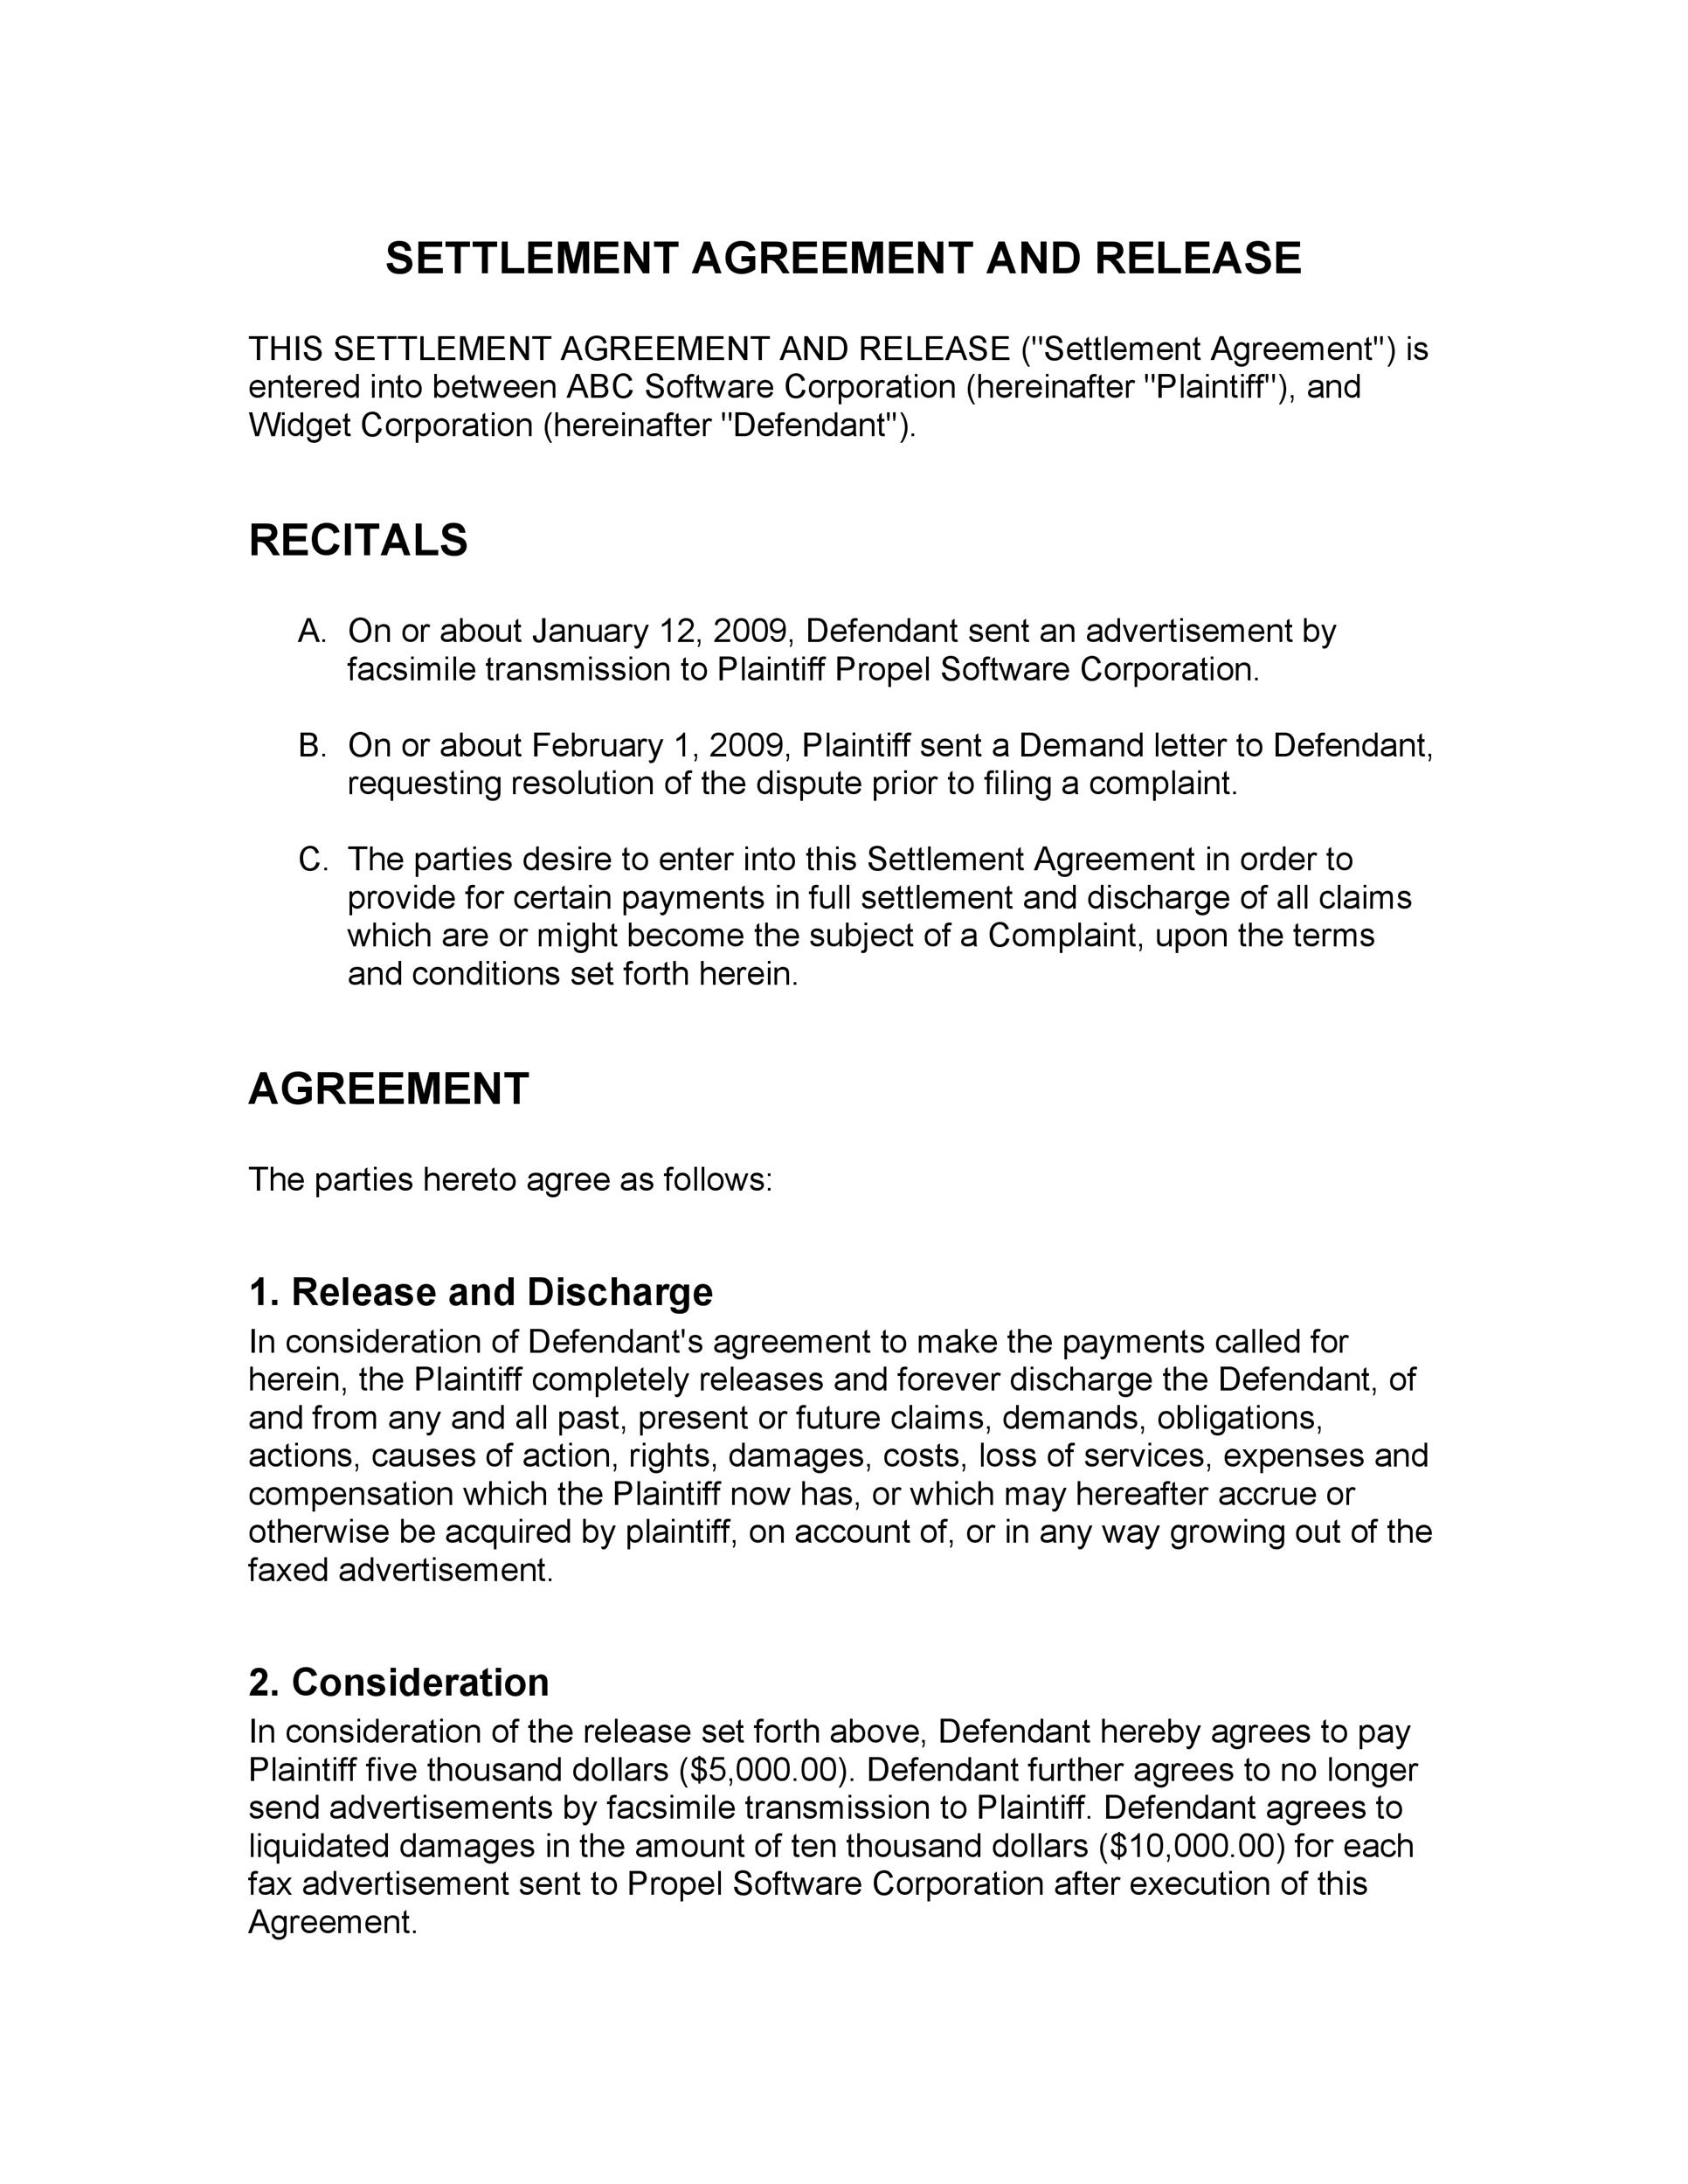 Free settlement agreement 03